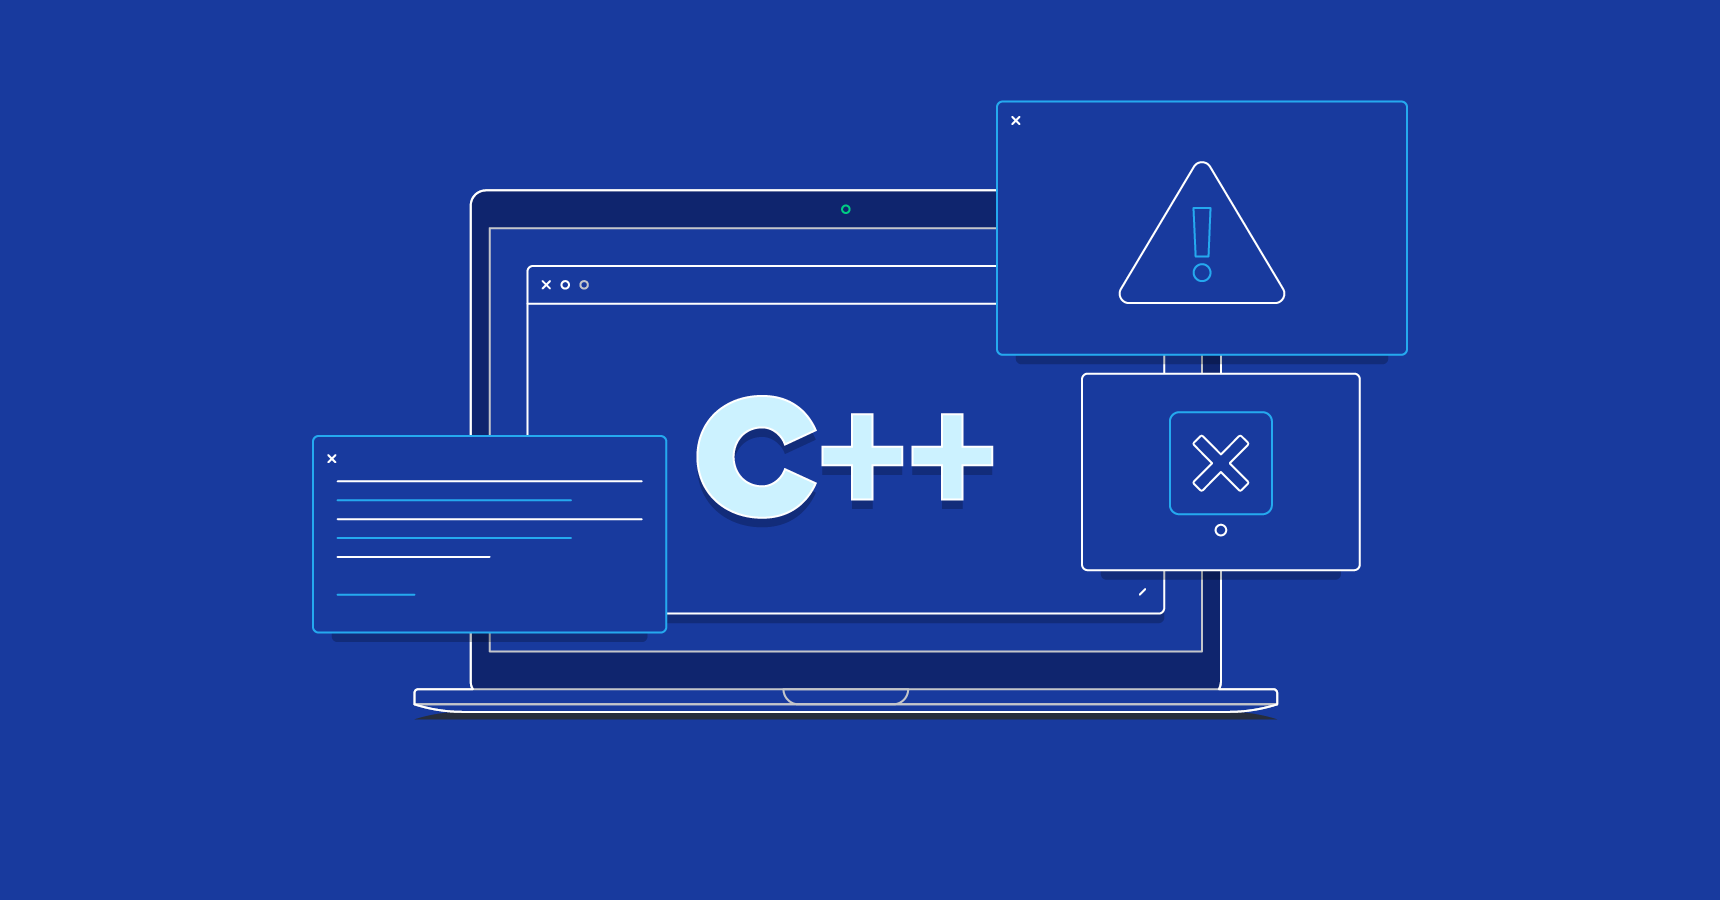 Top 10 Most Common C++ Mistakes That Developers Make | Toptal